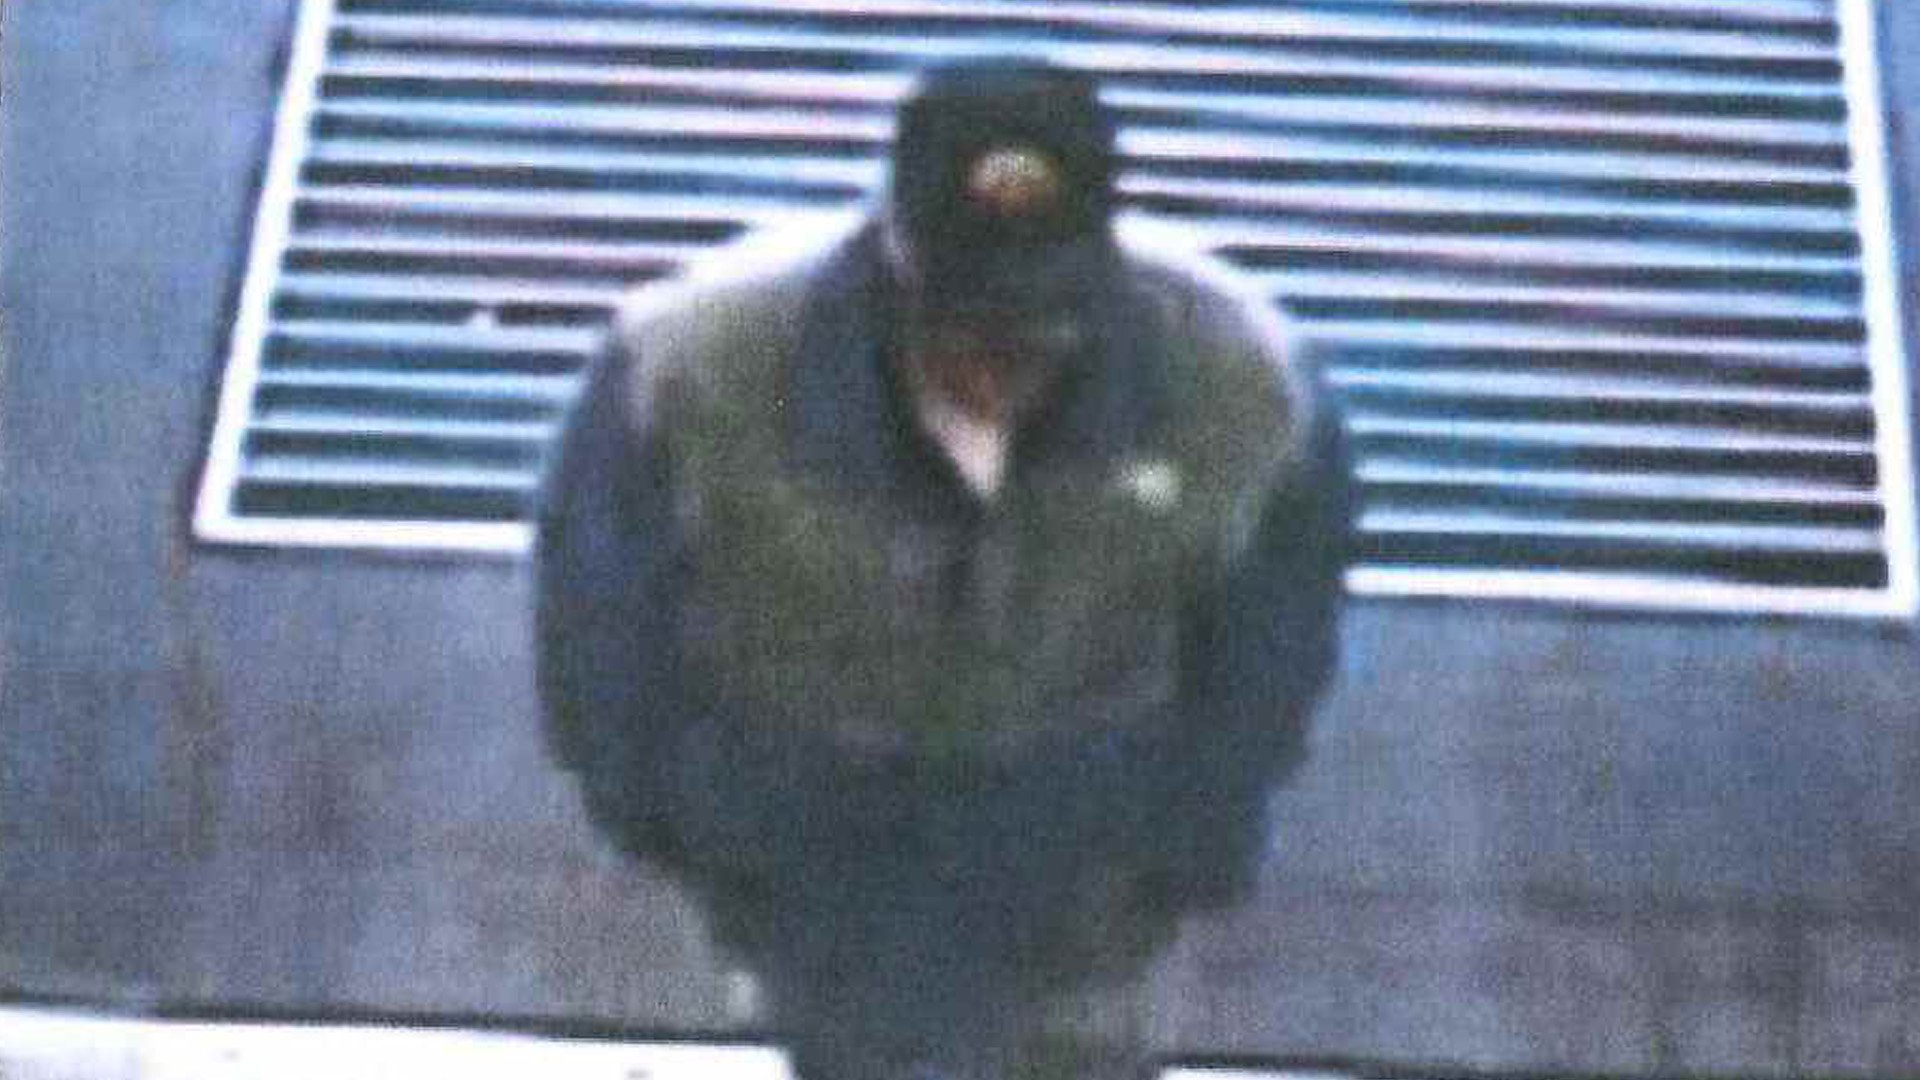 Surveillance footage from one of the thefts